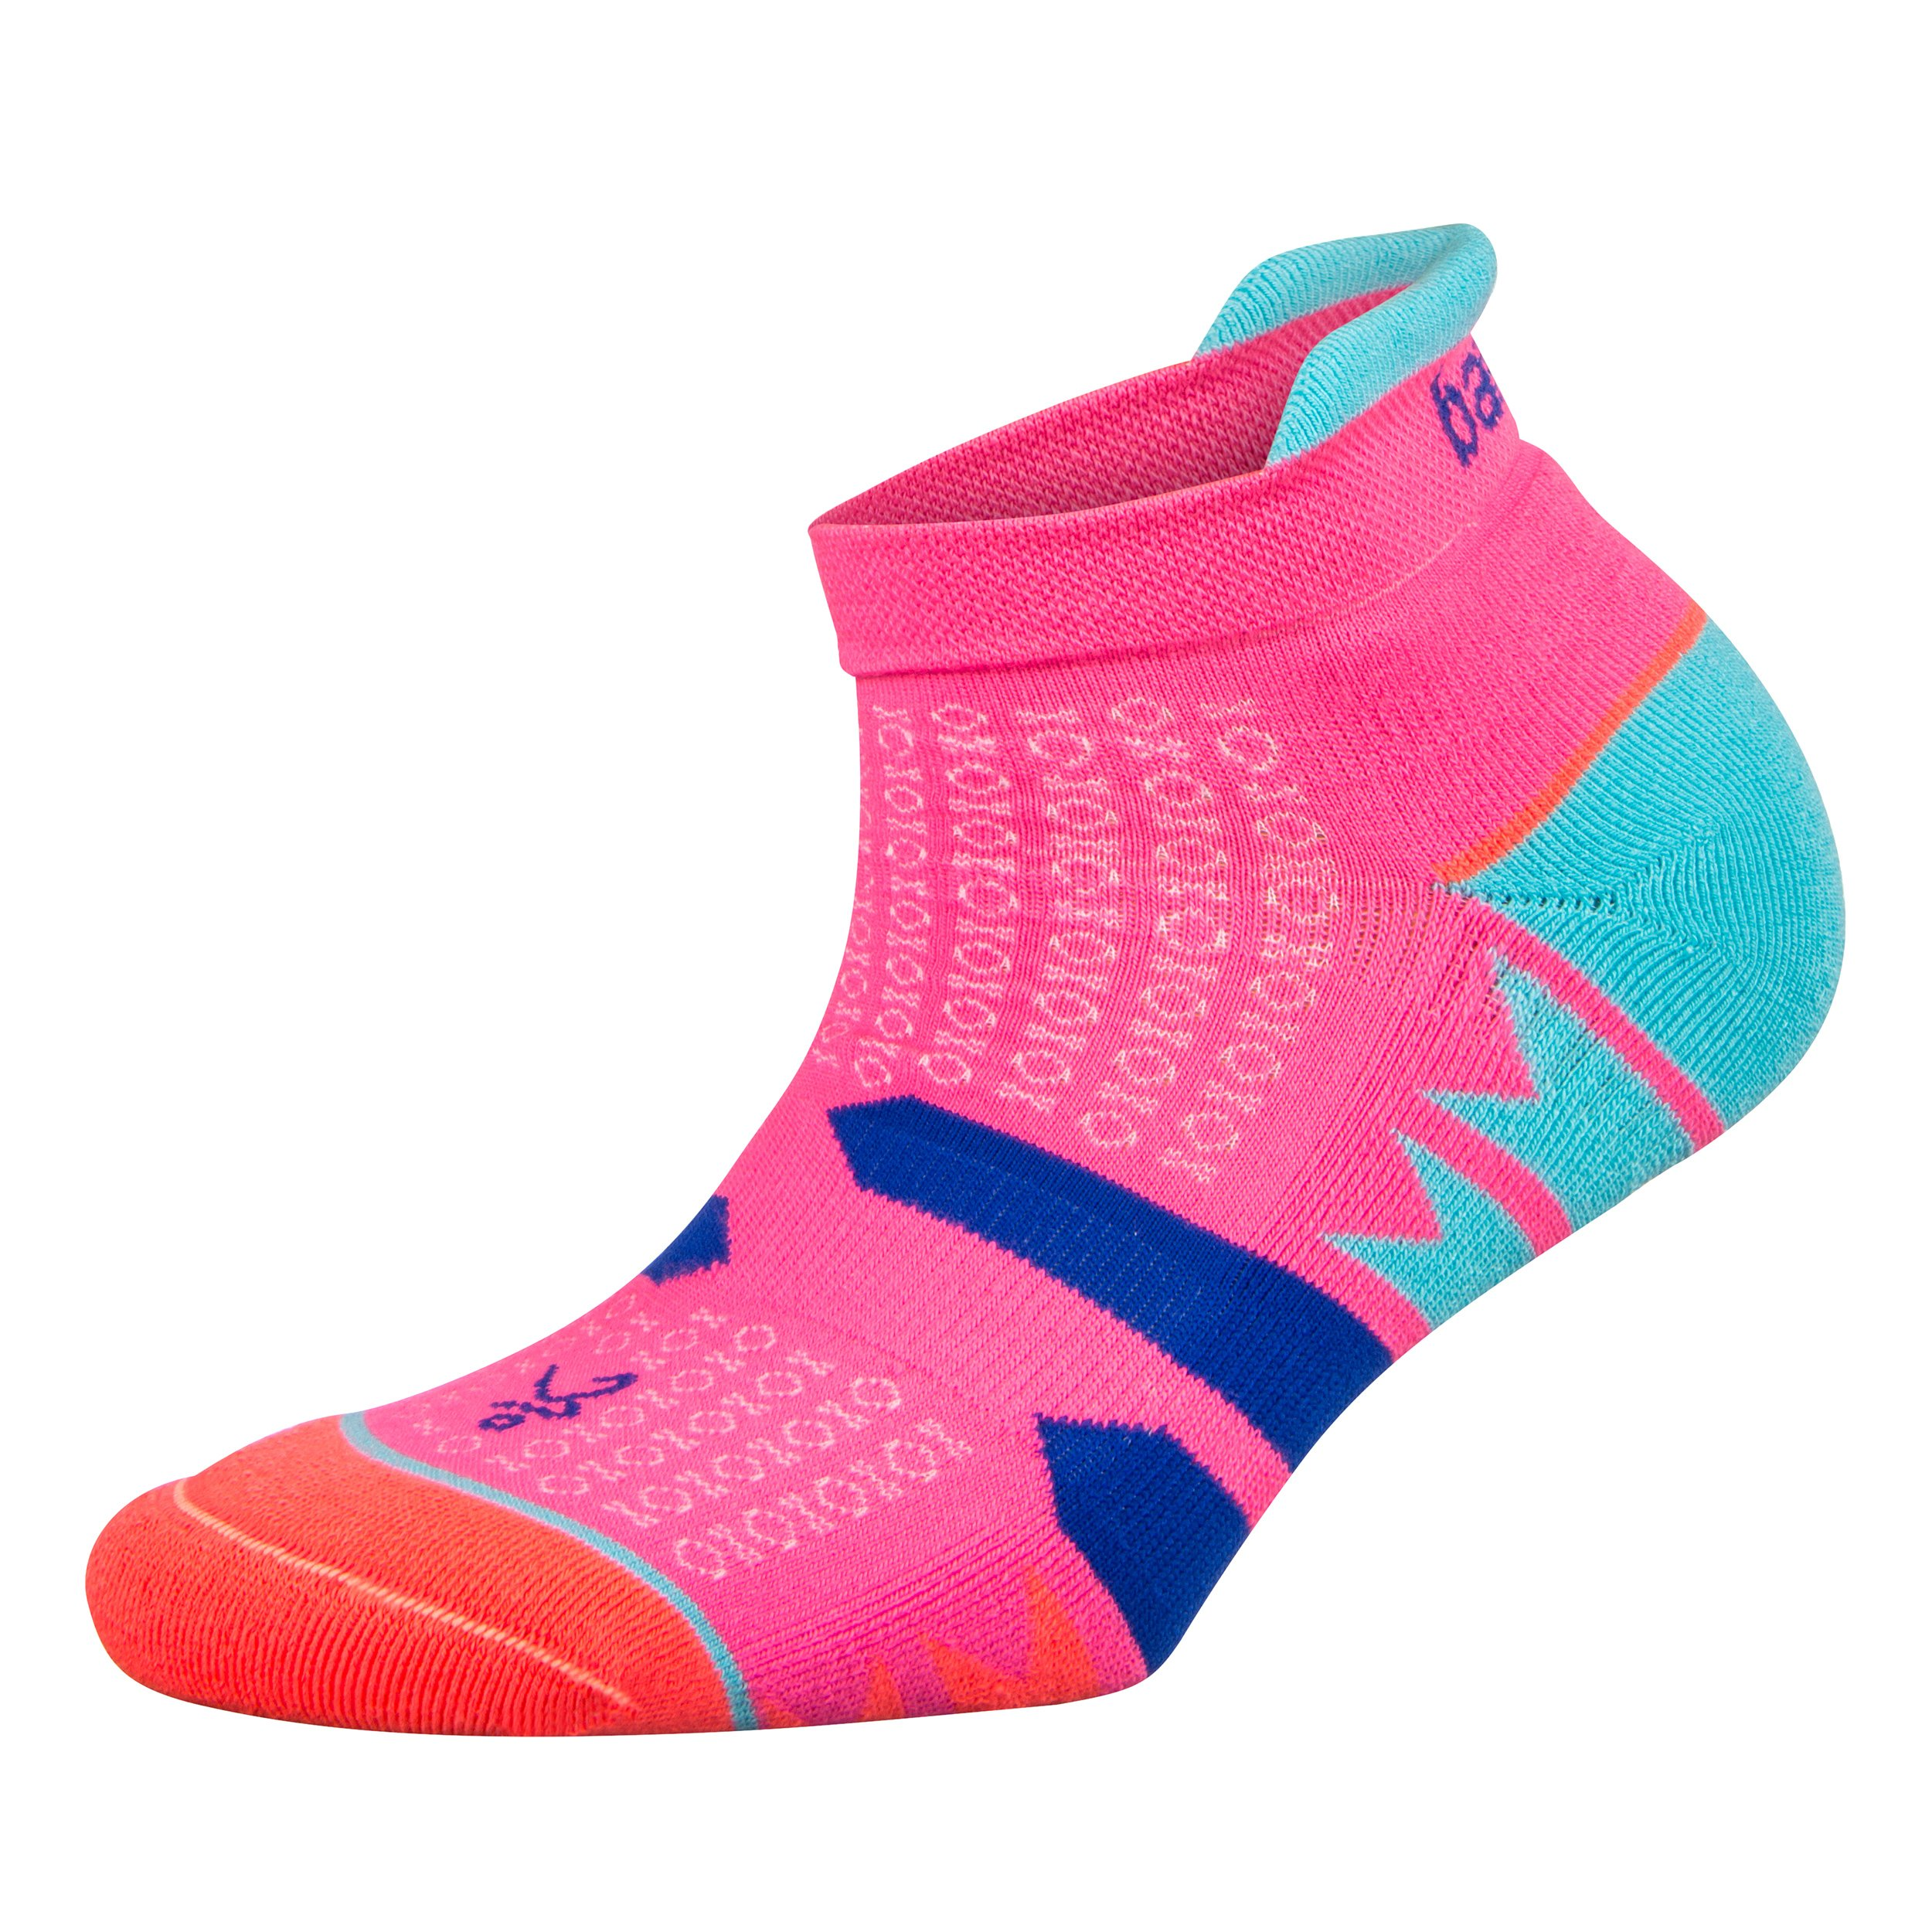 Balega Women's Enduro No Show Socks (1 Pair), Watermelon/Orange, Medium